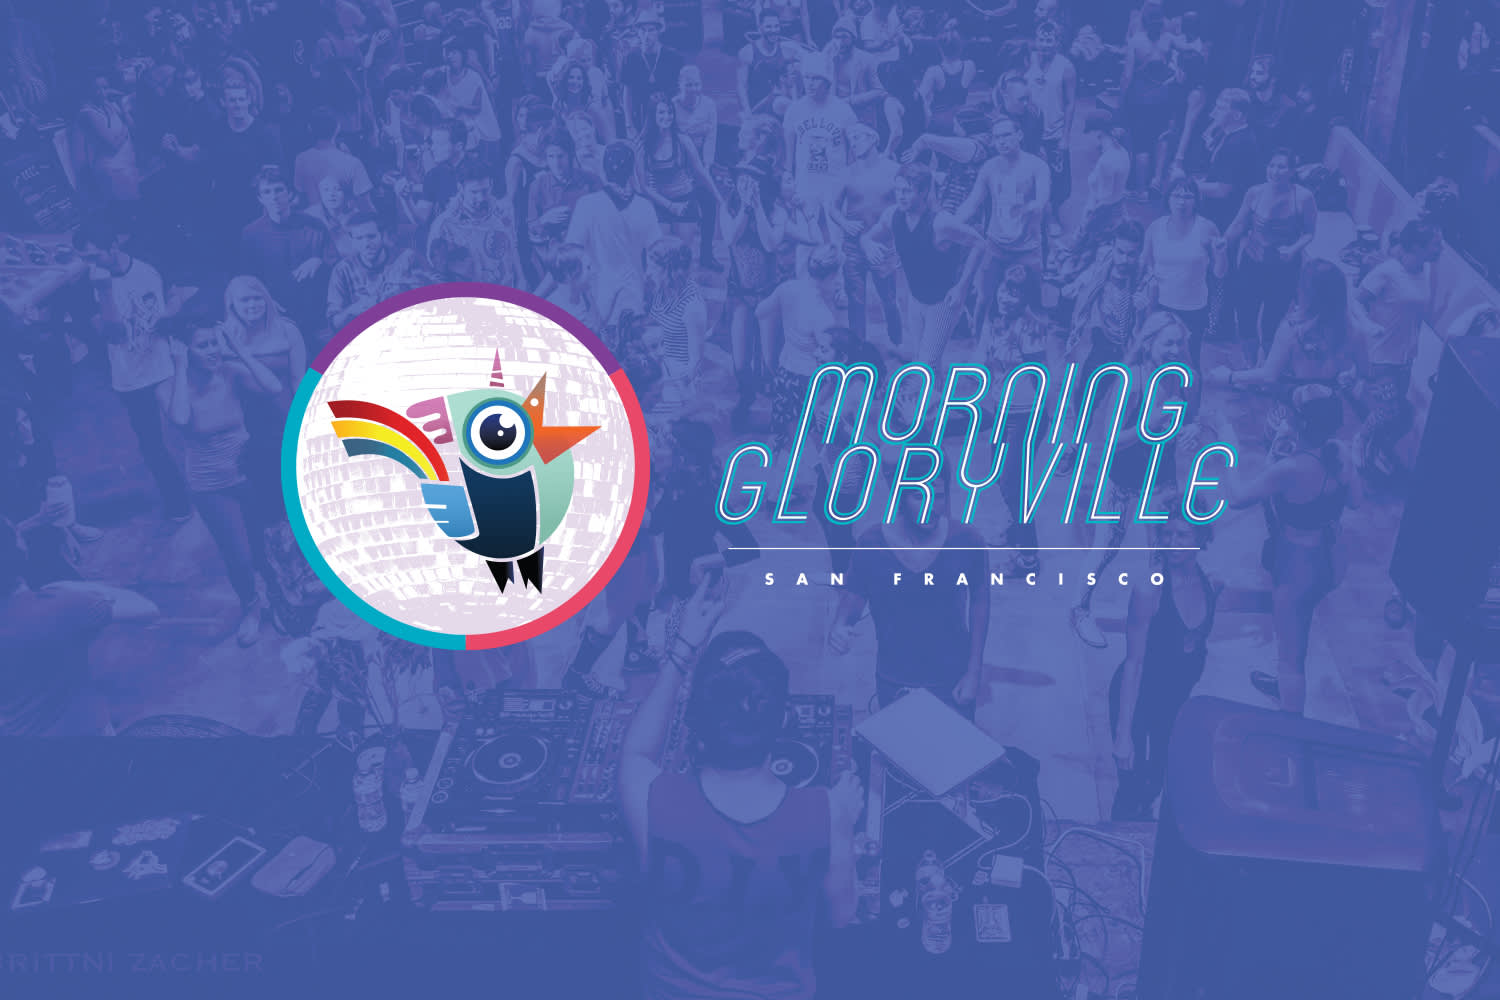 Morning Gloryville SF: Branding & Marketing Design